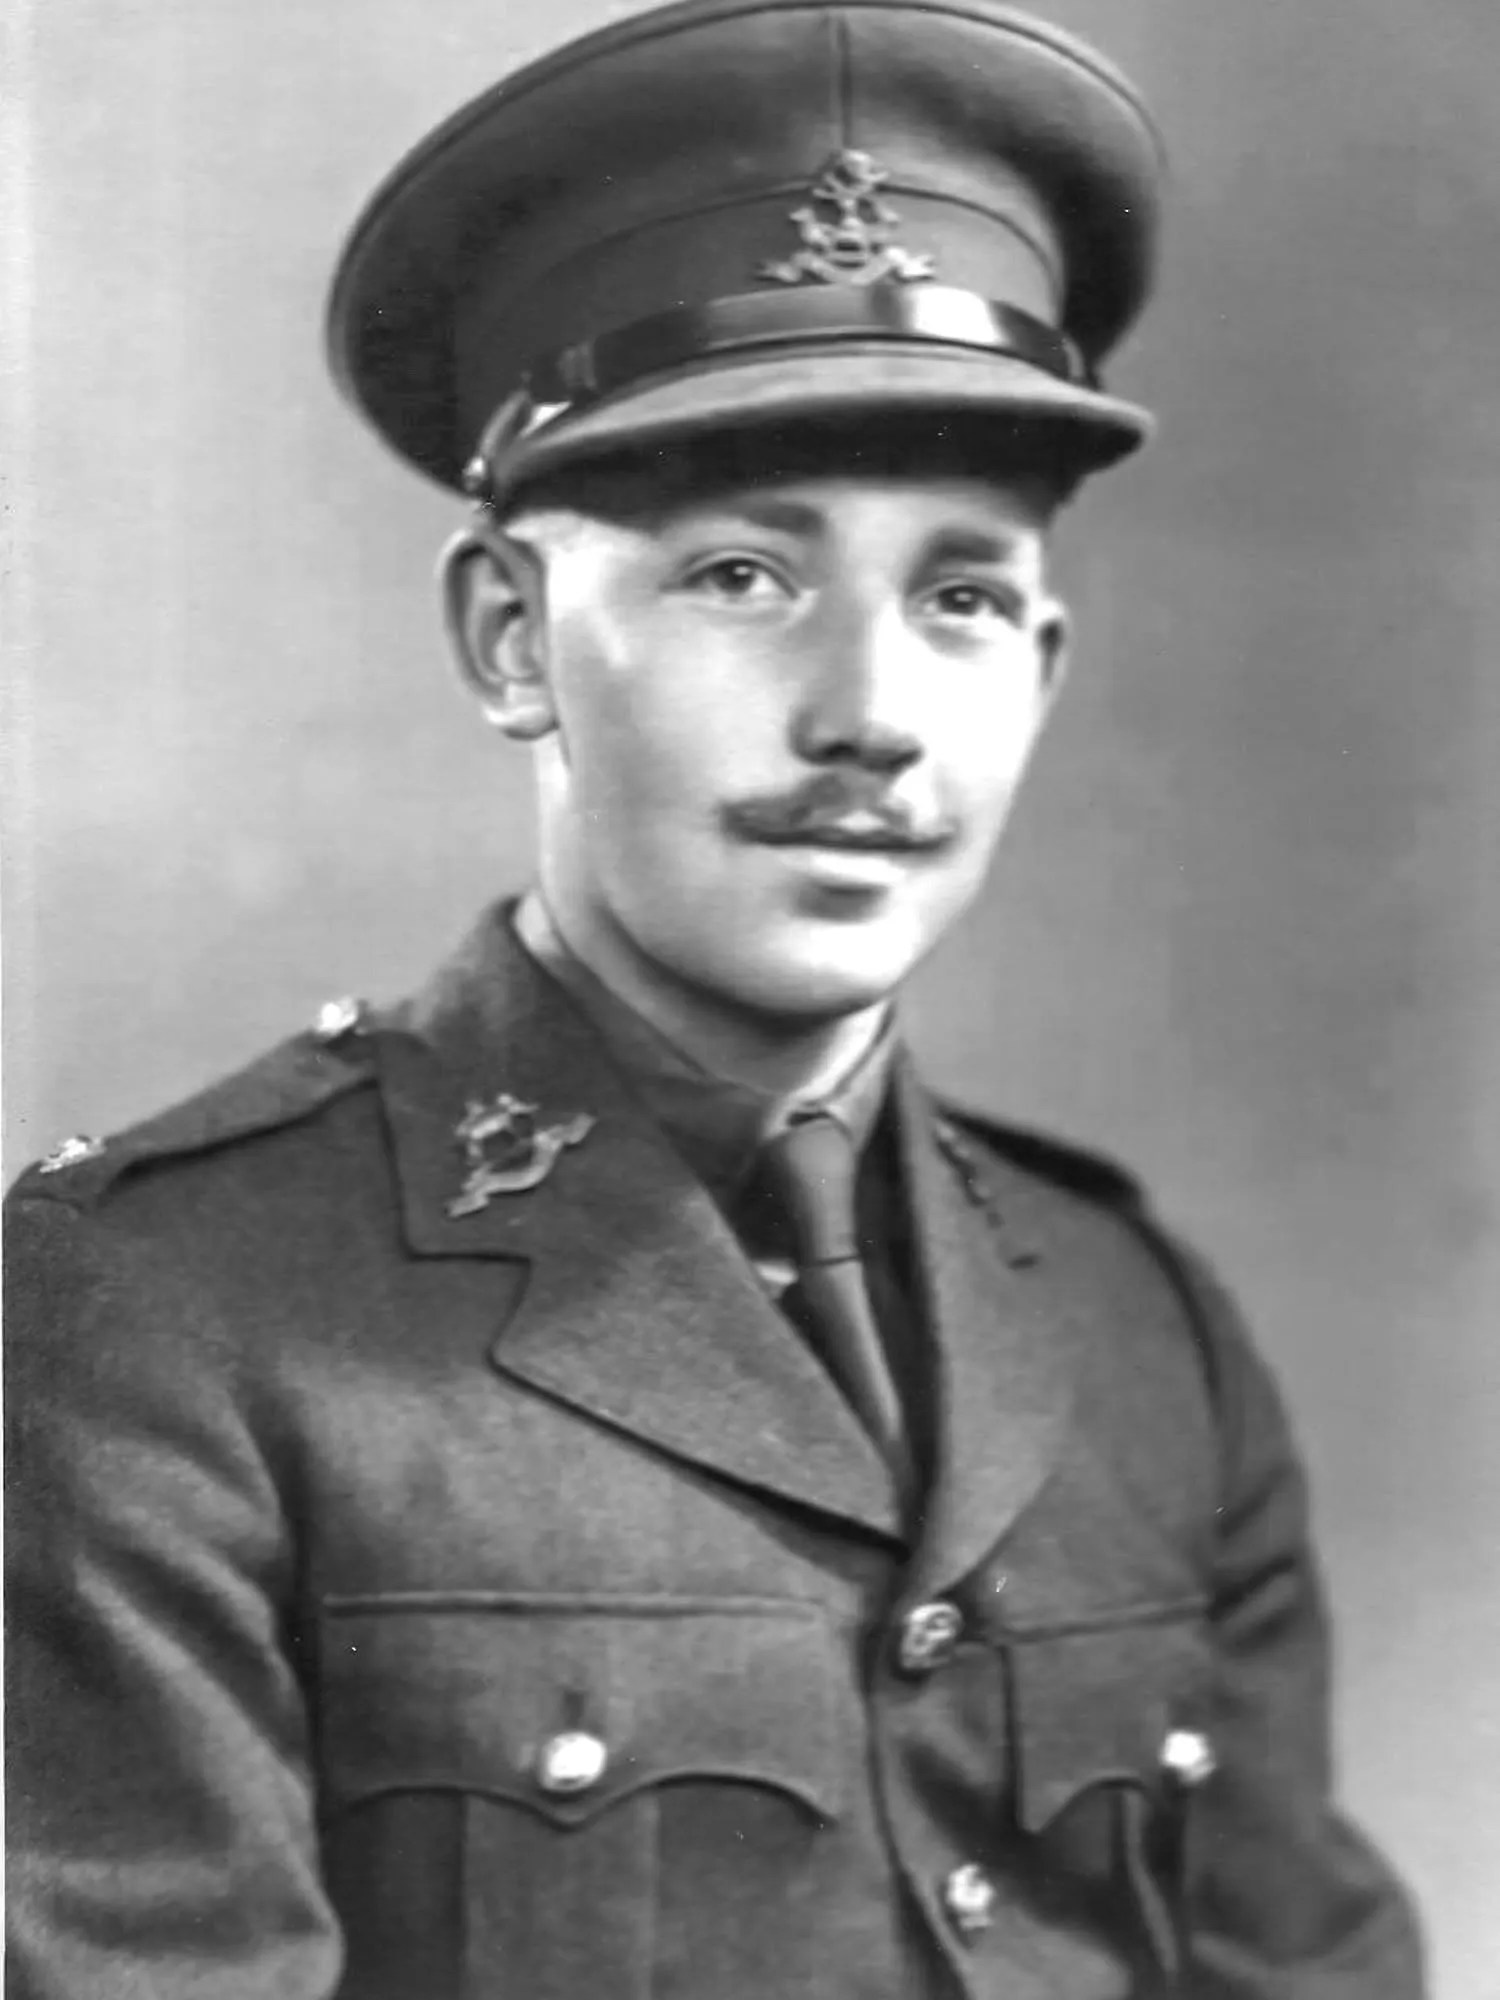 Tom Moore served in India and Indonesia during World War II. (Maytrix Group)